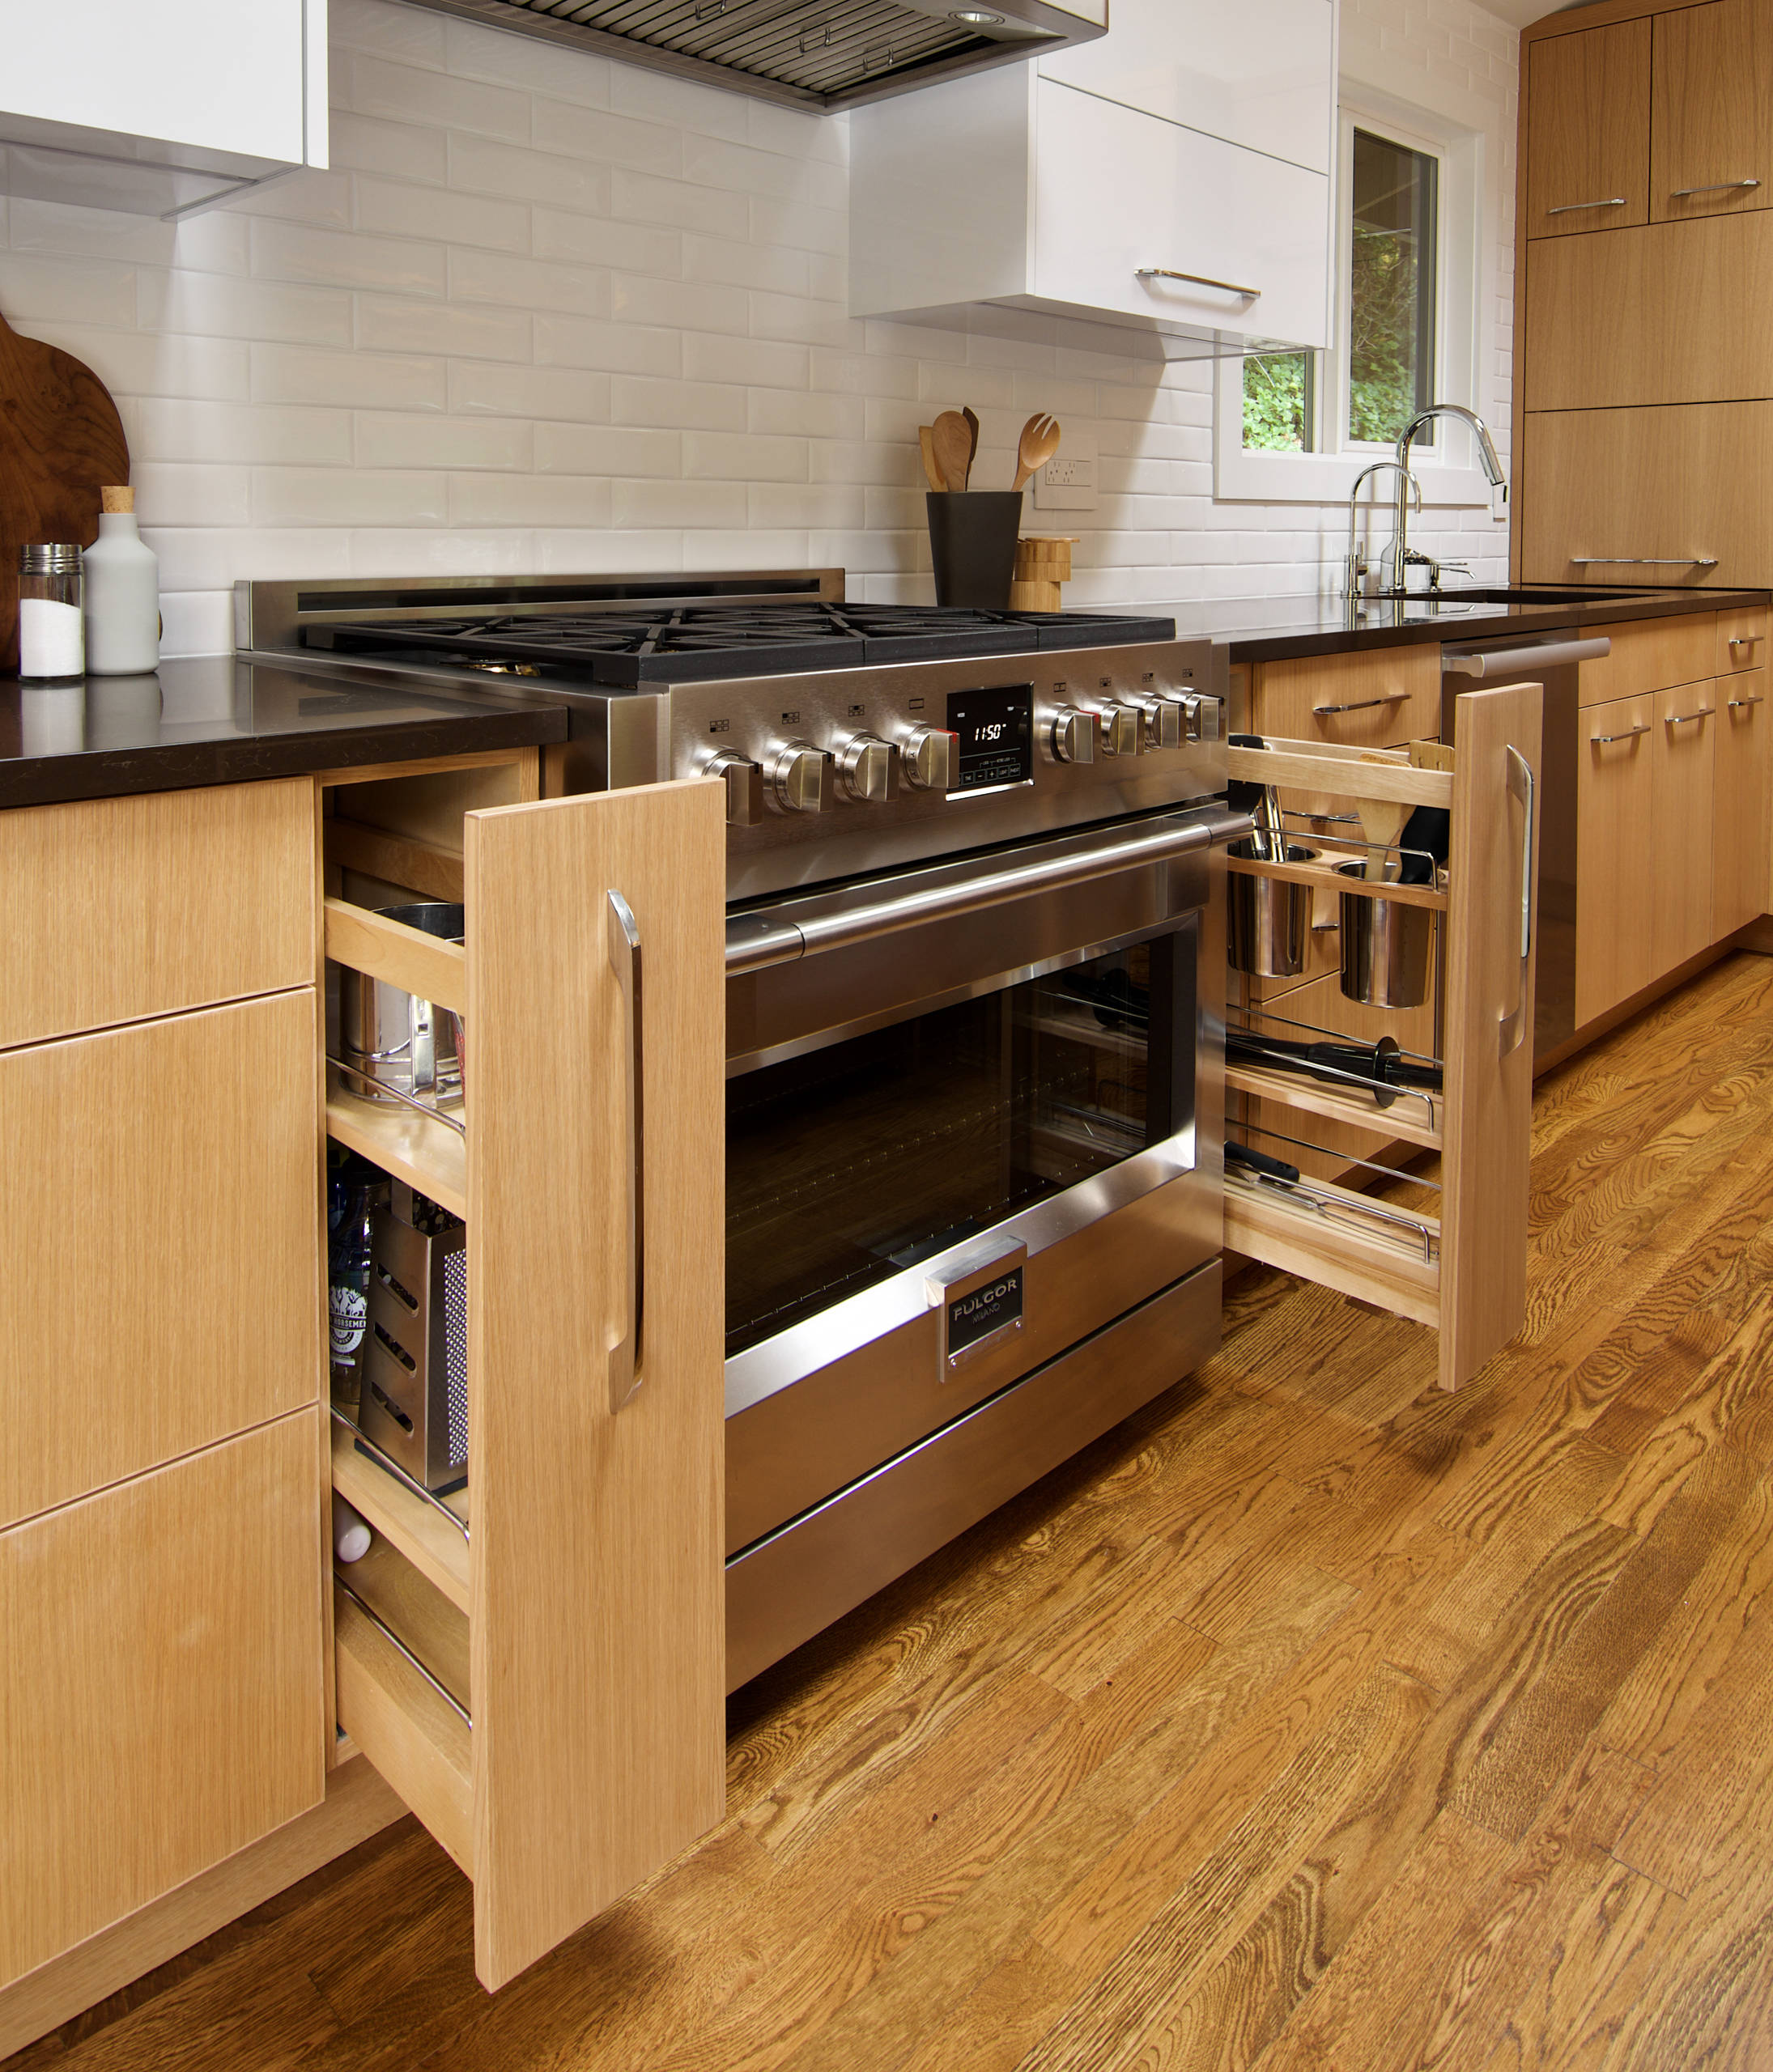 75 Beautiful Small L Shaped Kitchen Pictures Ideas October 2020 Houzz